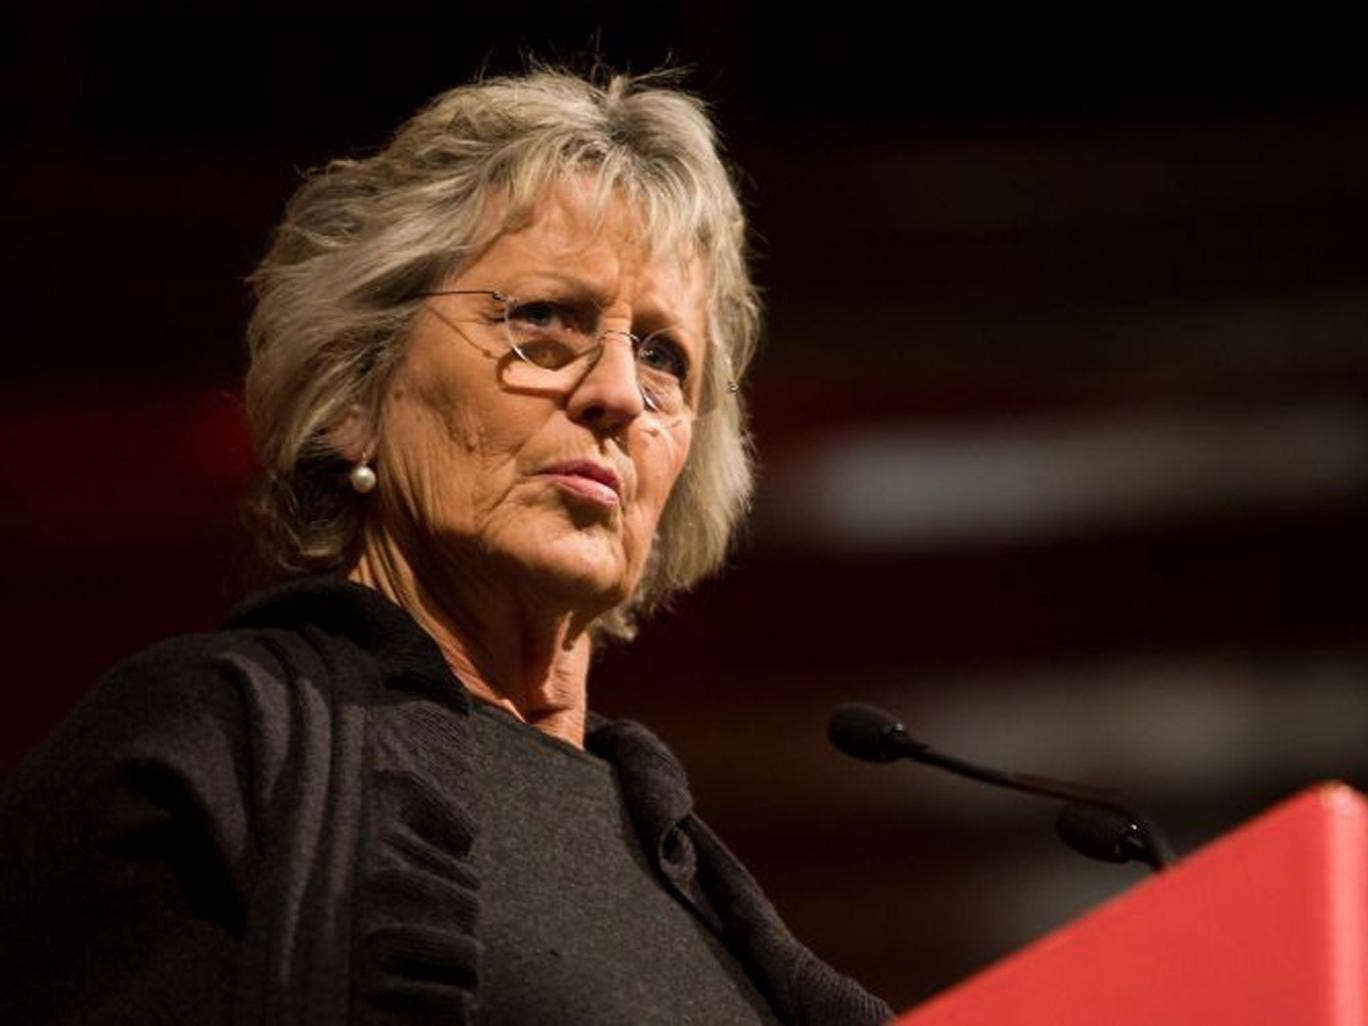 Germaine Greer became a household name with the publication of 'The Female Eunuch'